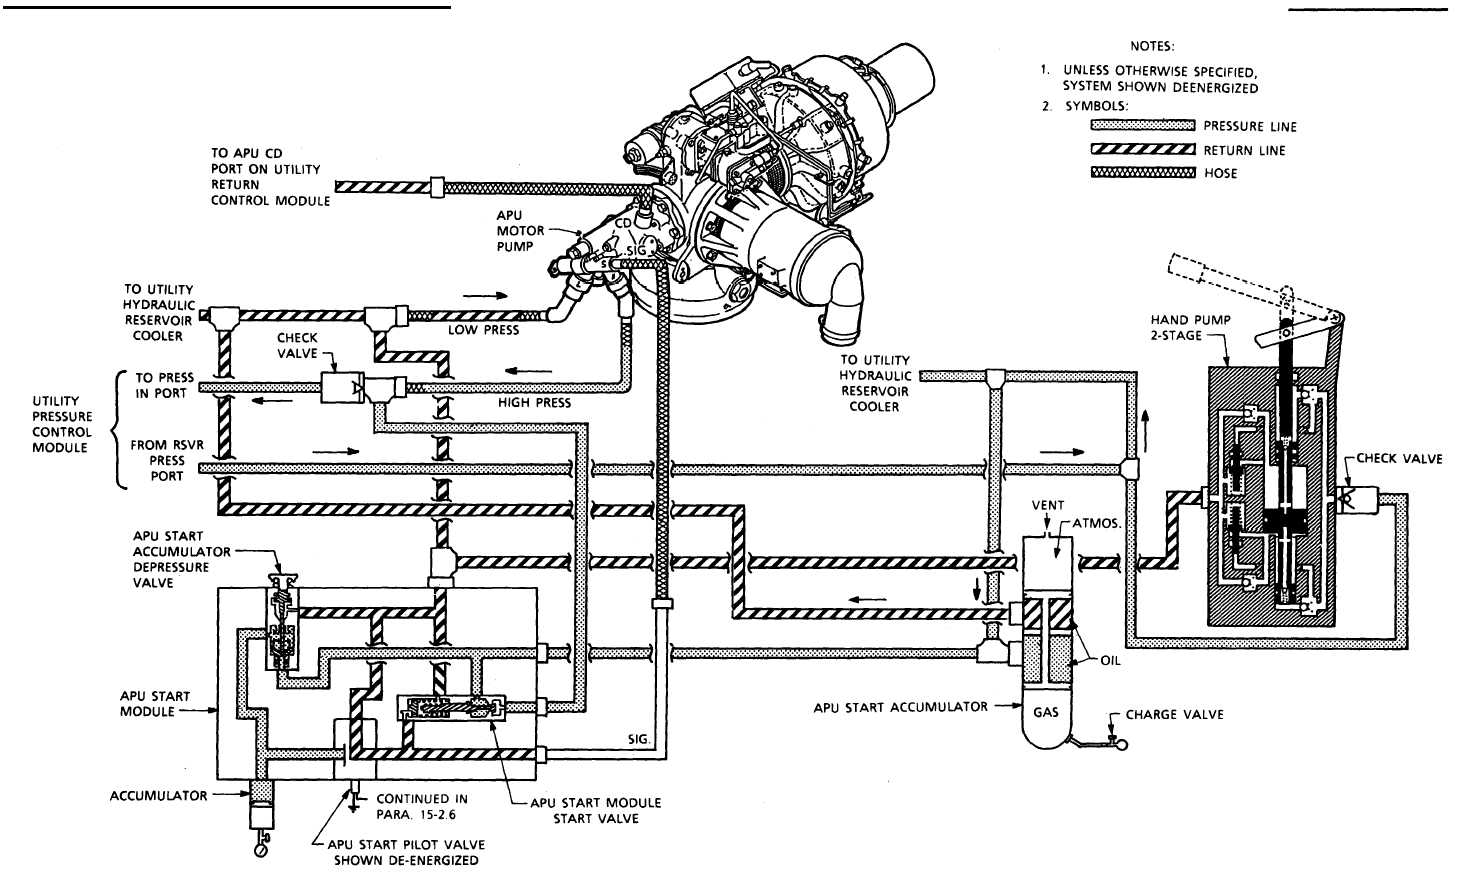 hight resolution of pneumatic schematic of pump and tank get free image about wiring diagram bobcat s300 toy bobcat